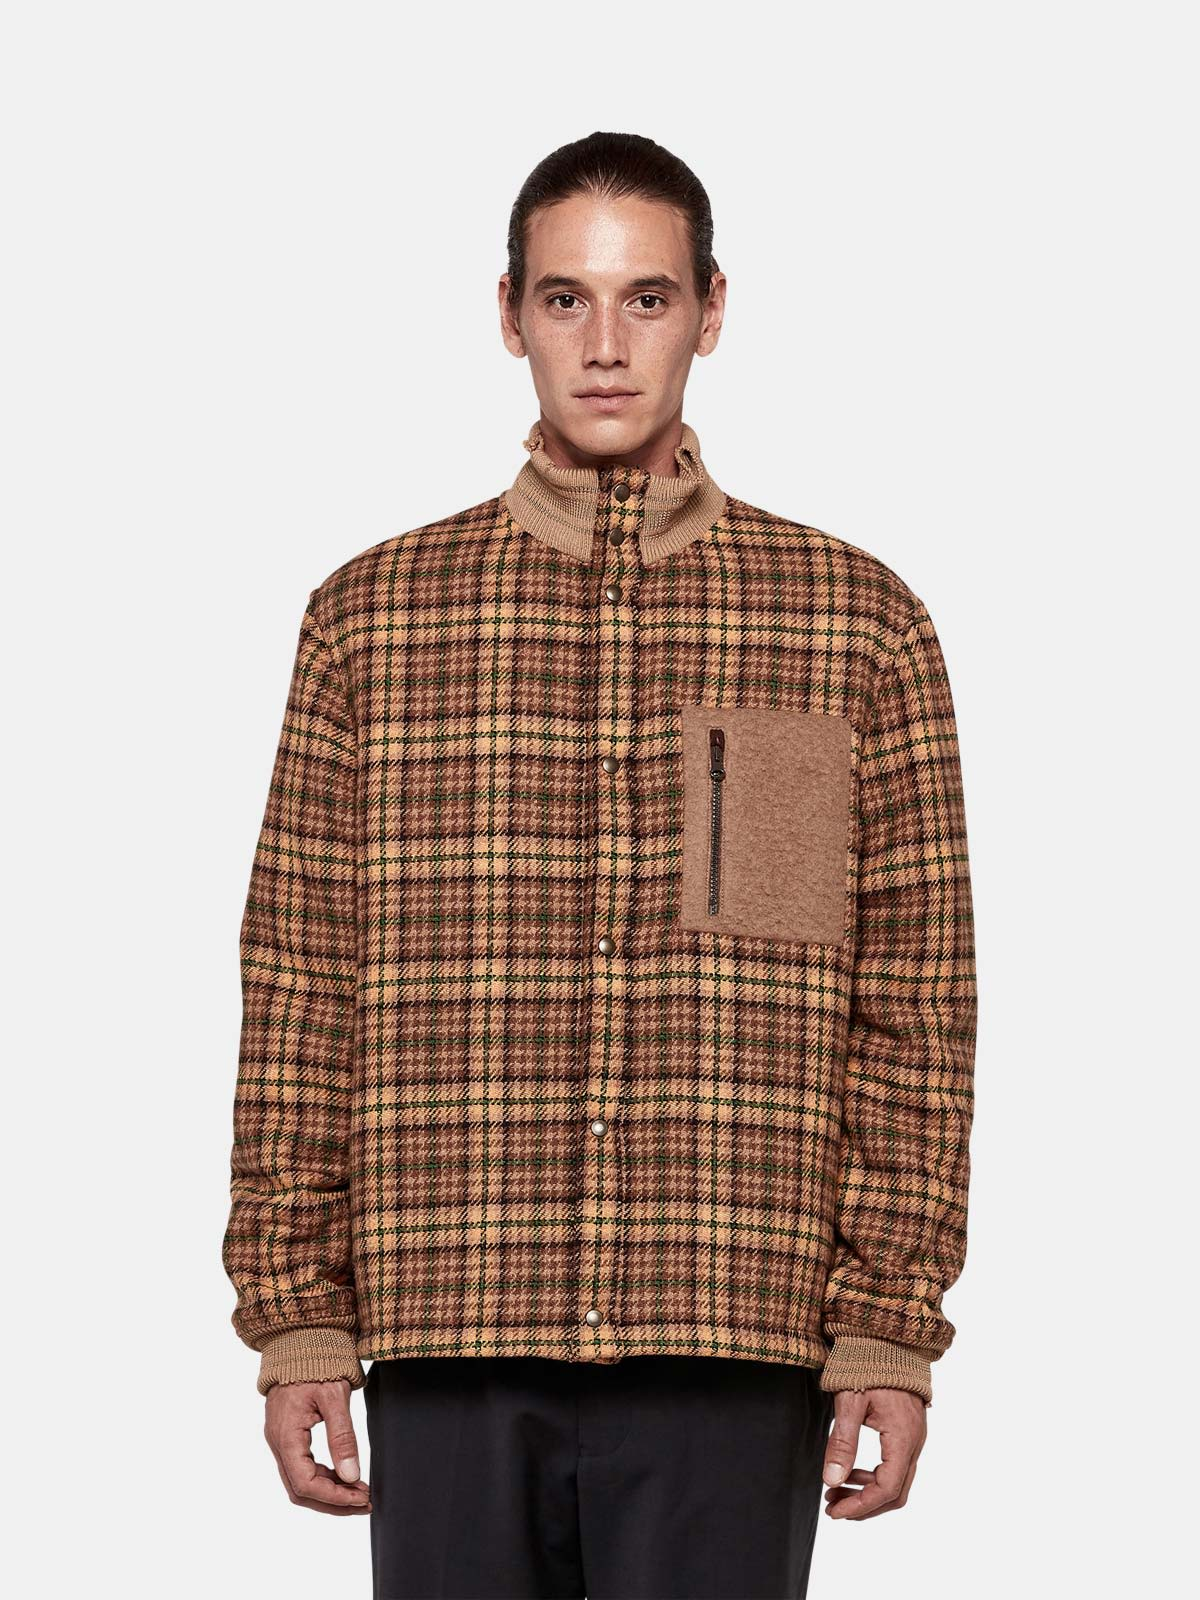 Golden Goose - Haru bomber jacket in tweed with patch pocket in